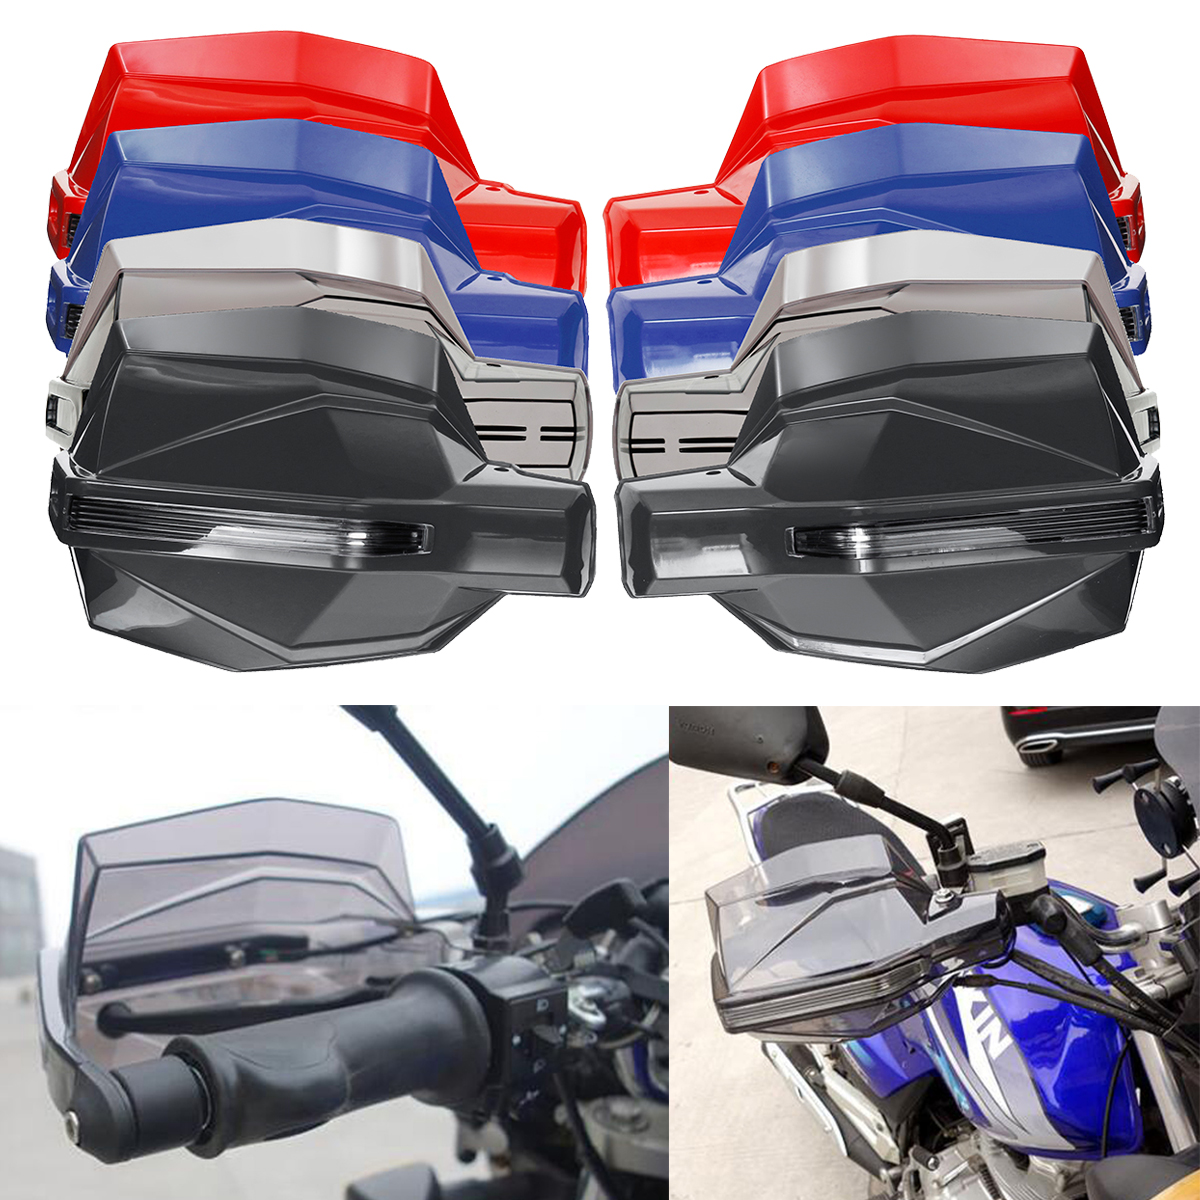 Motorcycle Motocross Enduro Dirt Bike Handguard Brush Shield Windproof Protector Universal Hand guard Motorbike Protective Gear цена